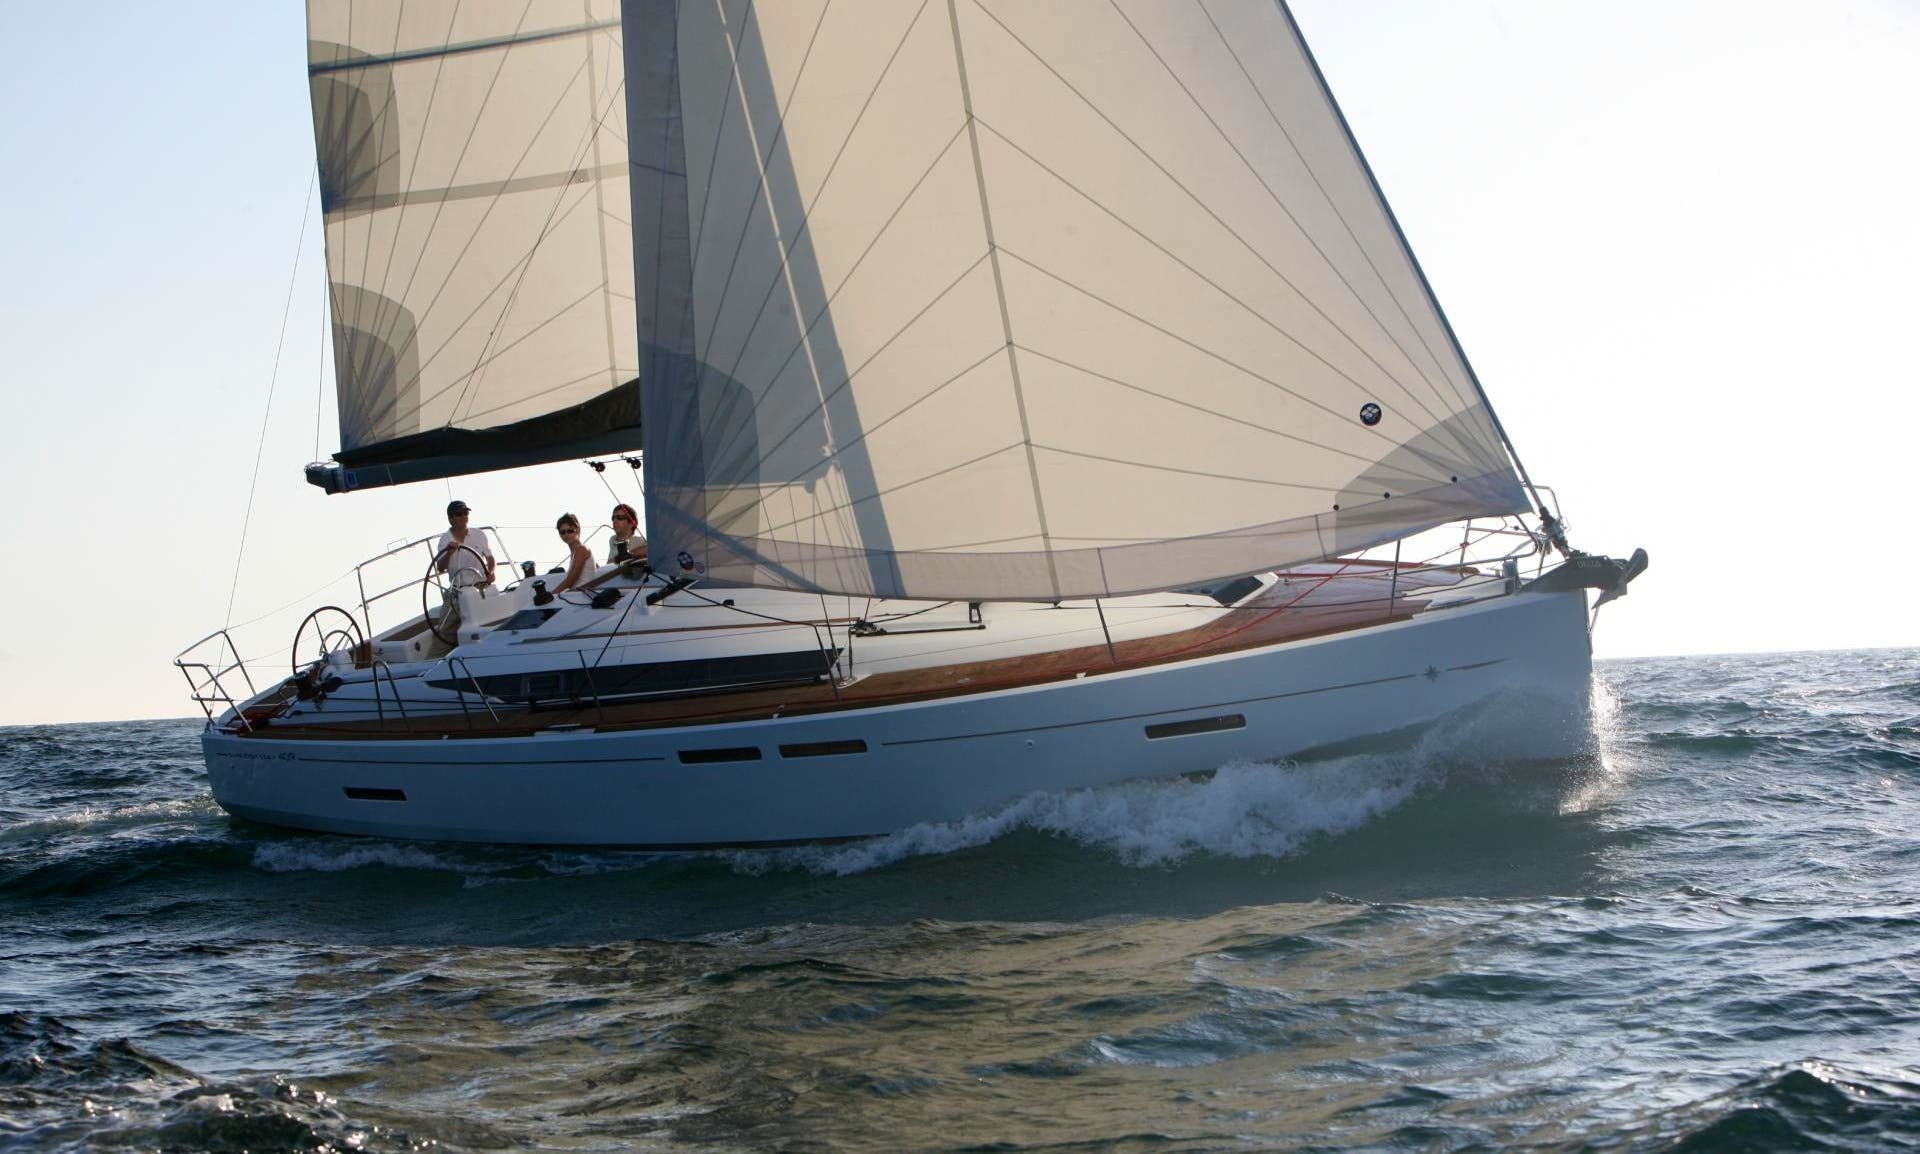 Sail and relax in Skiathos, Greece on this beautiful yacht!